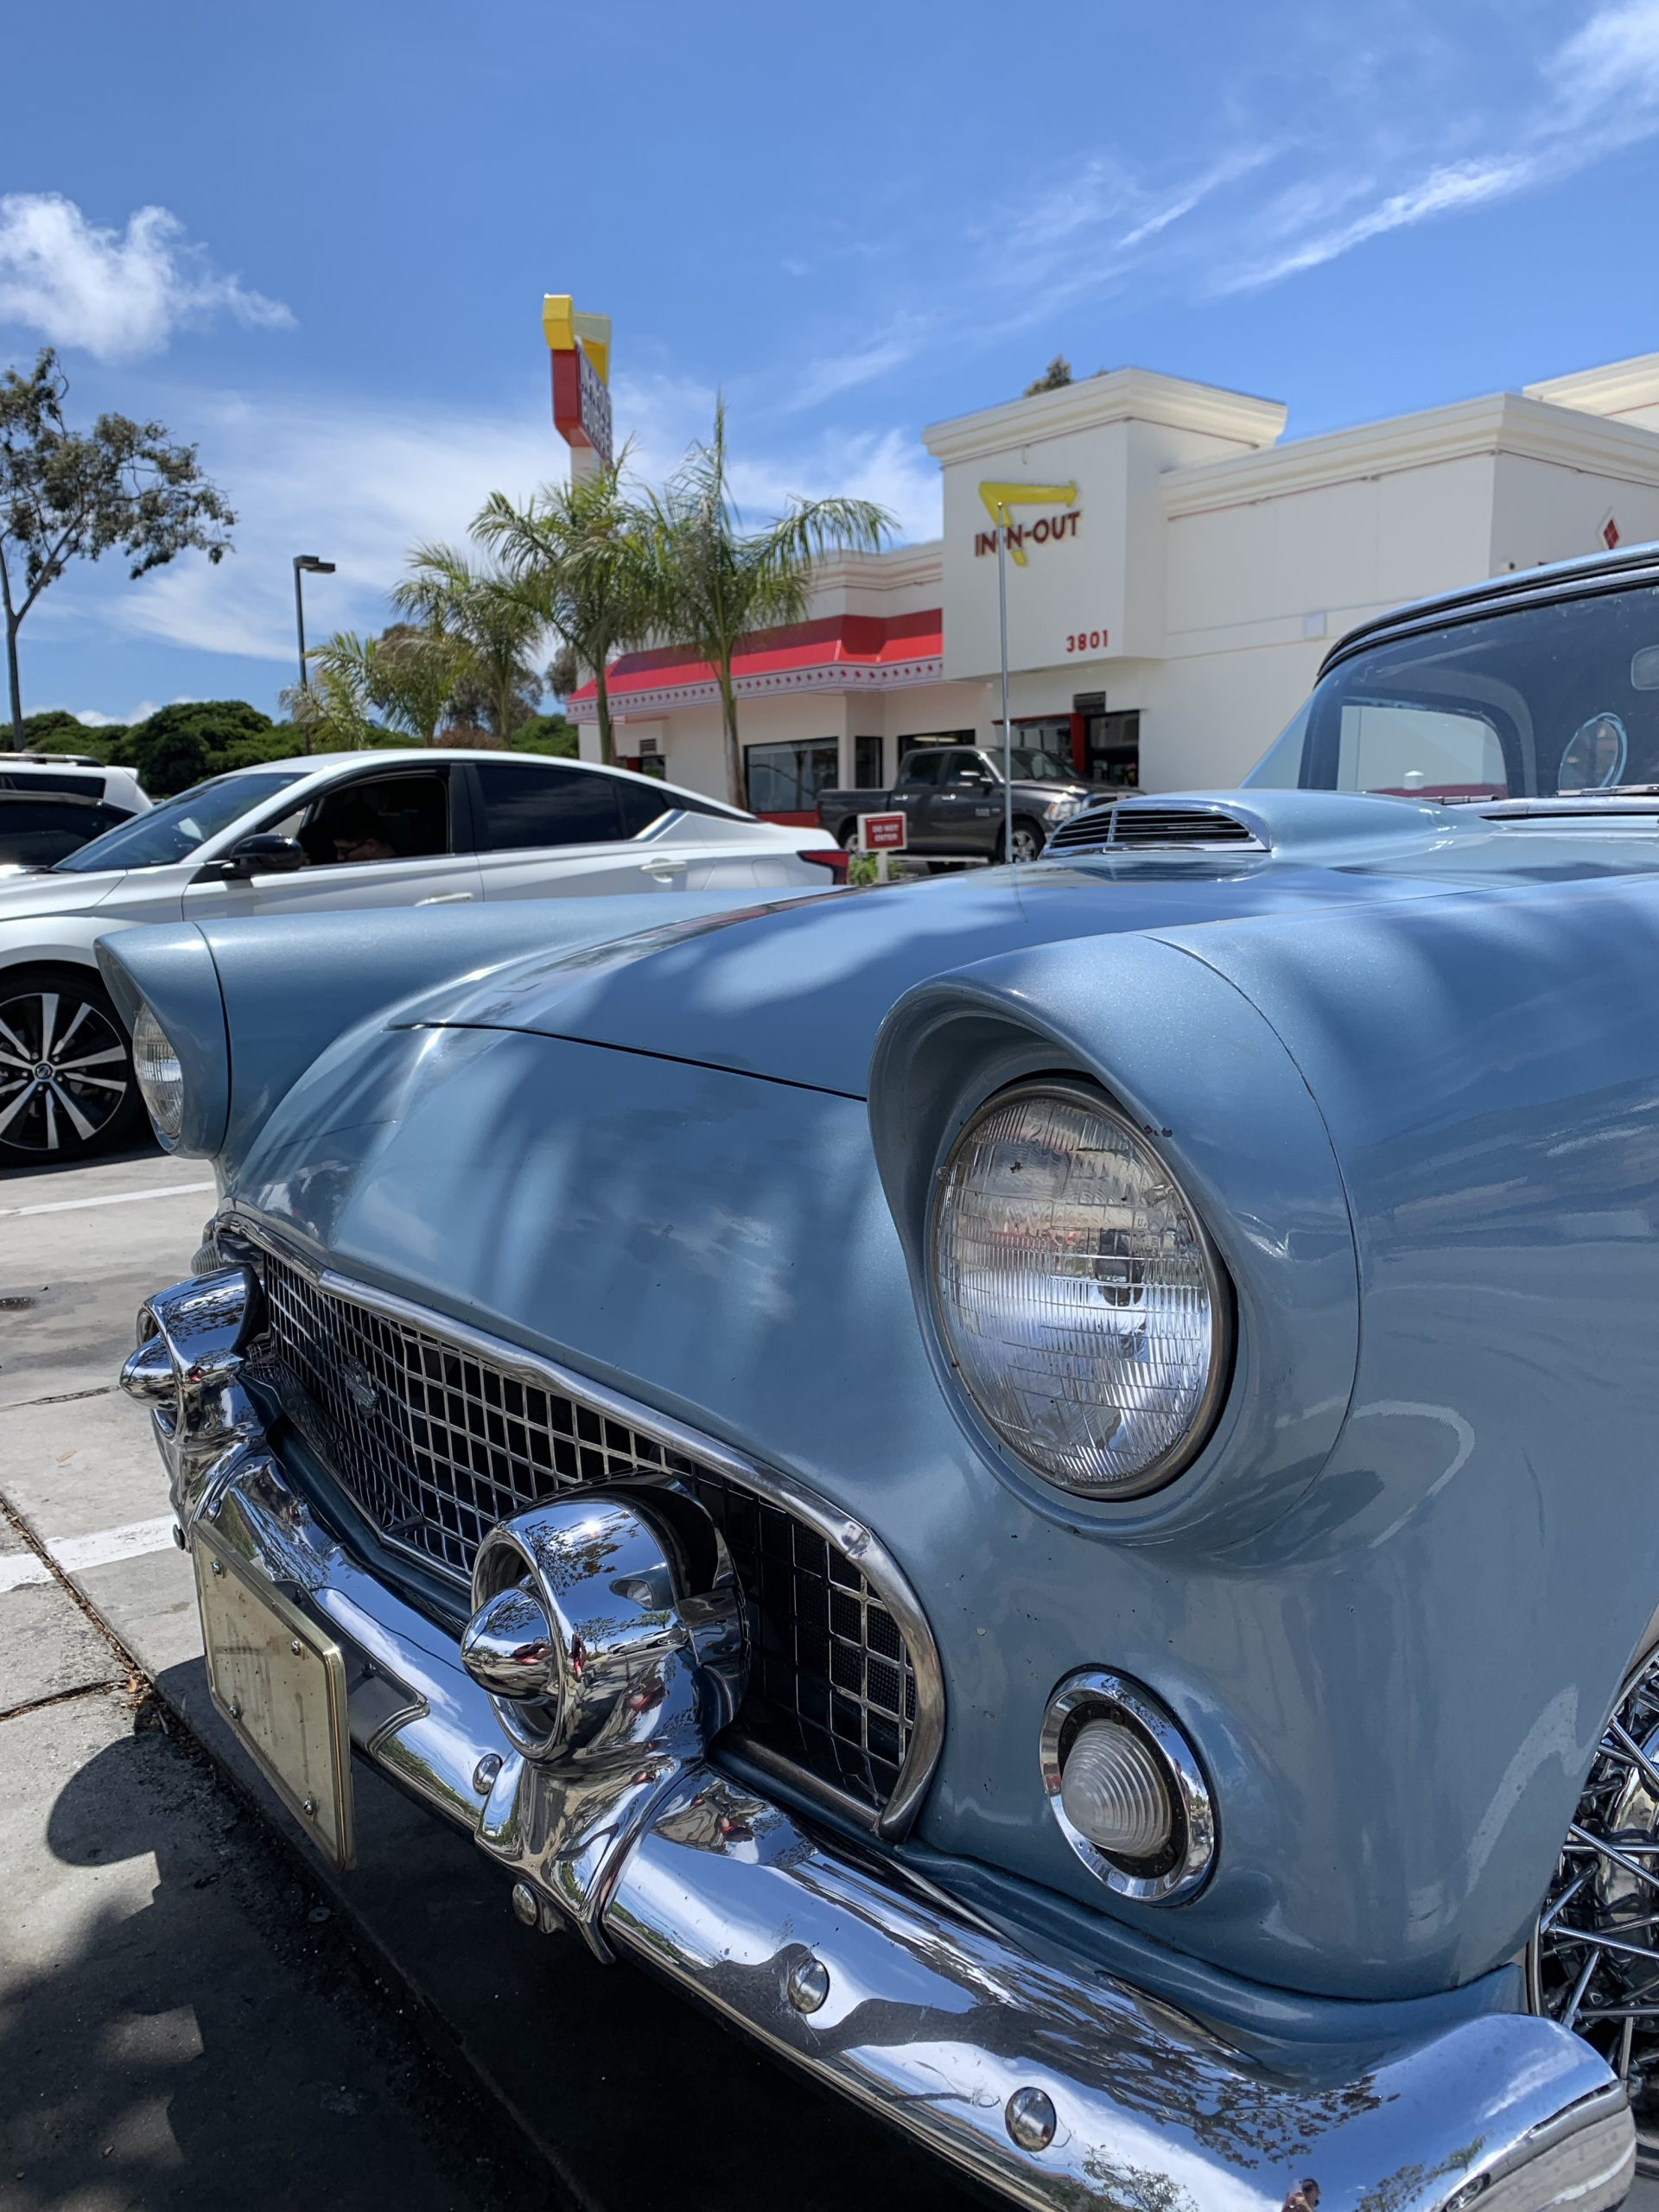 1956 Ford Thunderbird At In N Out Burger